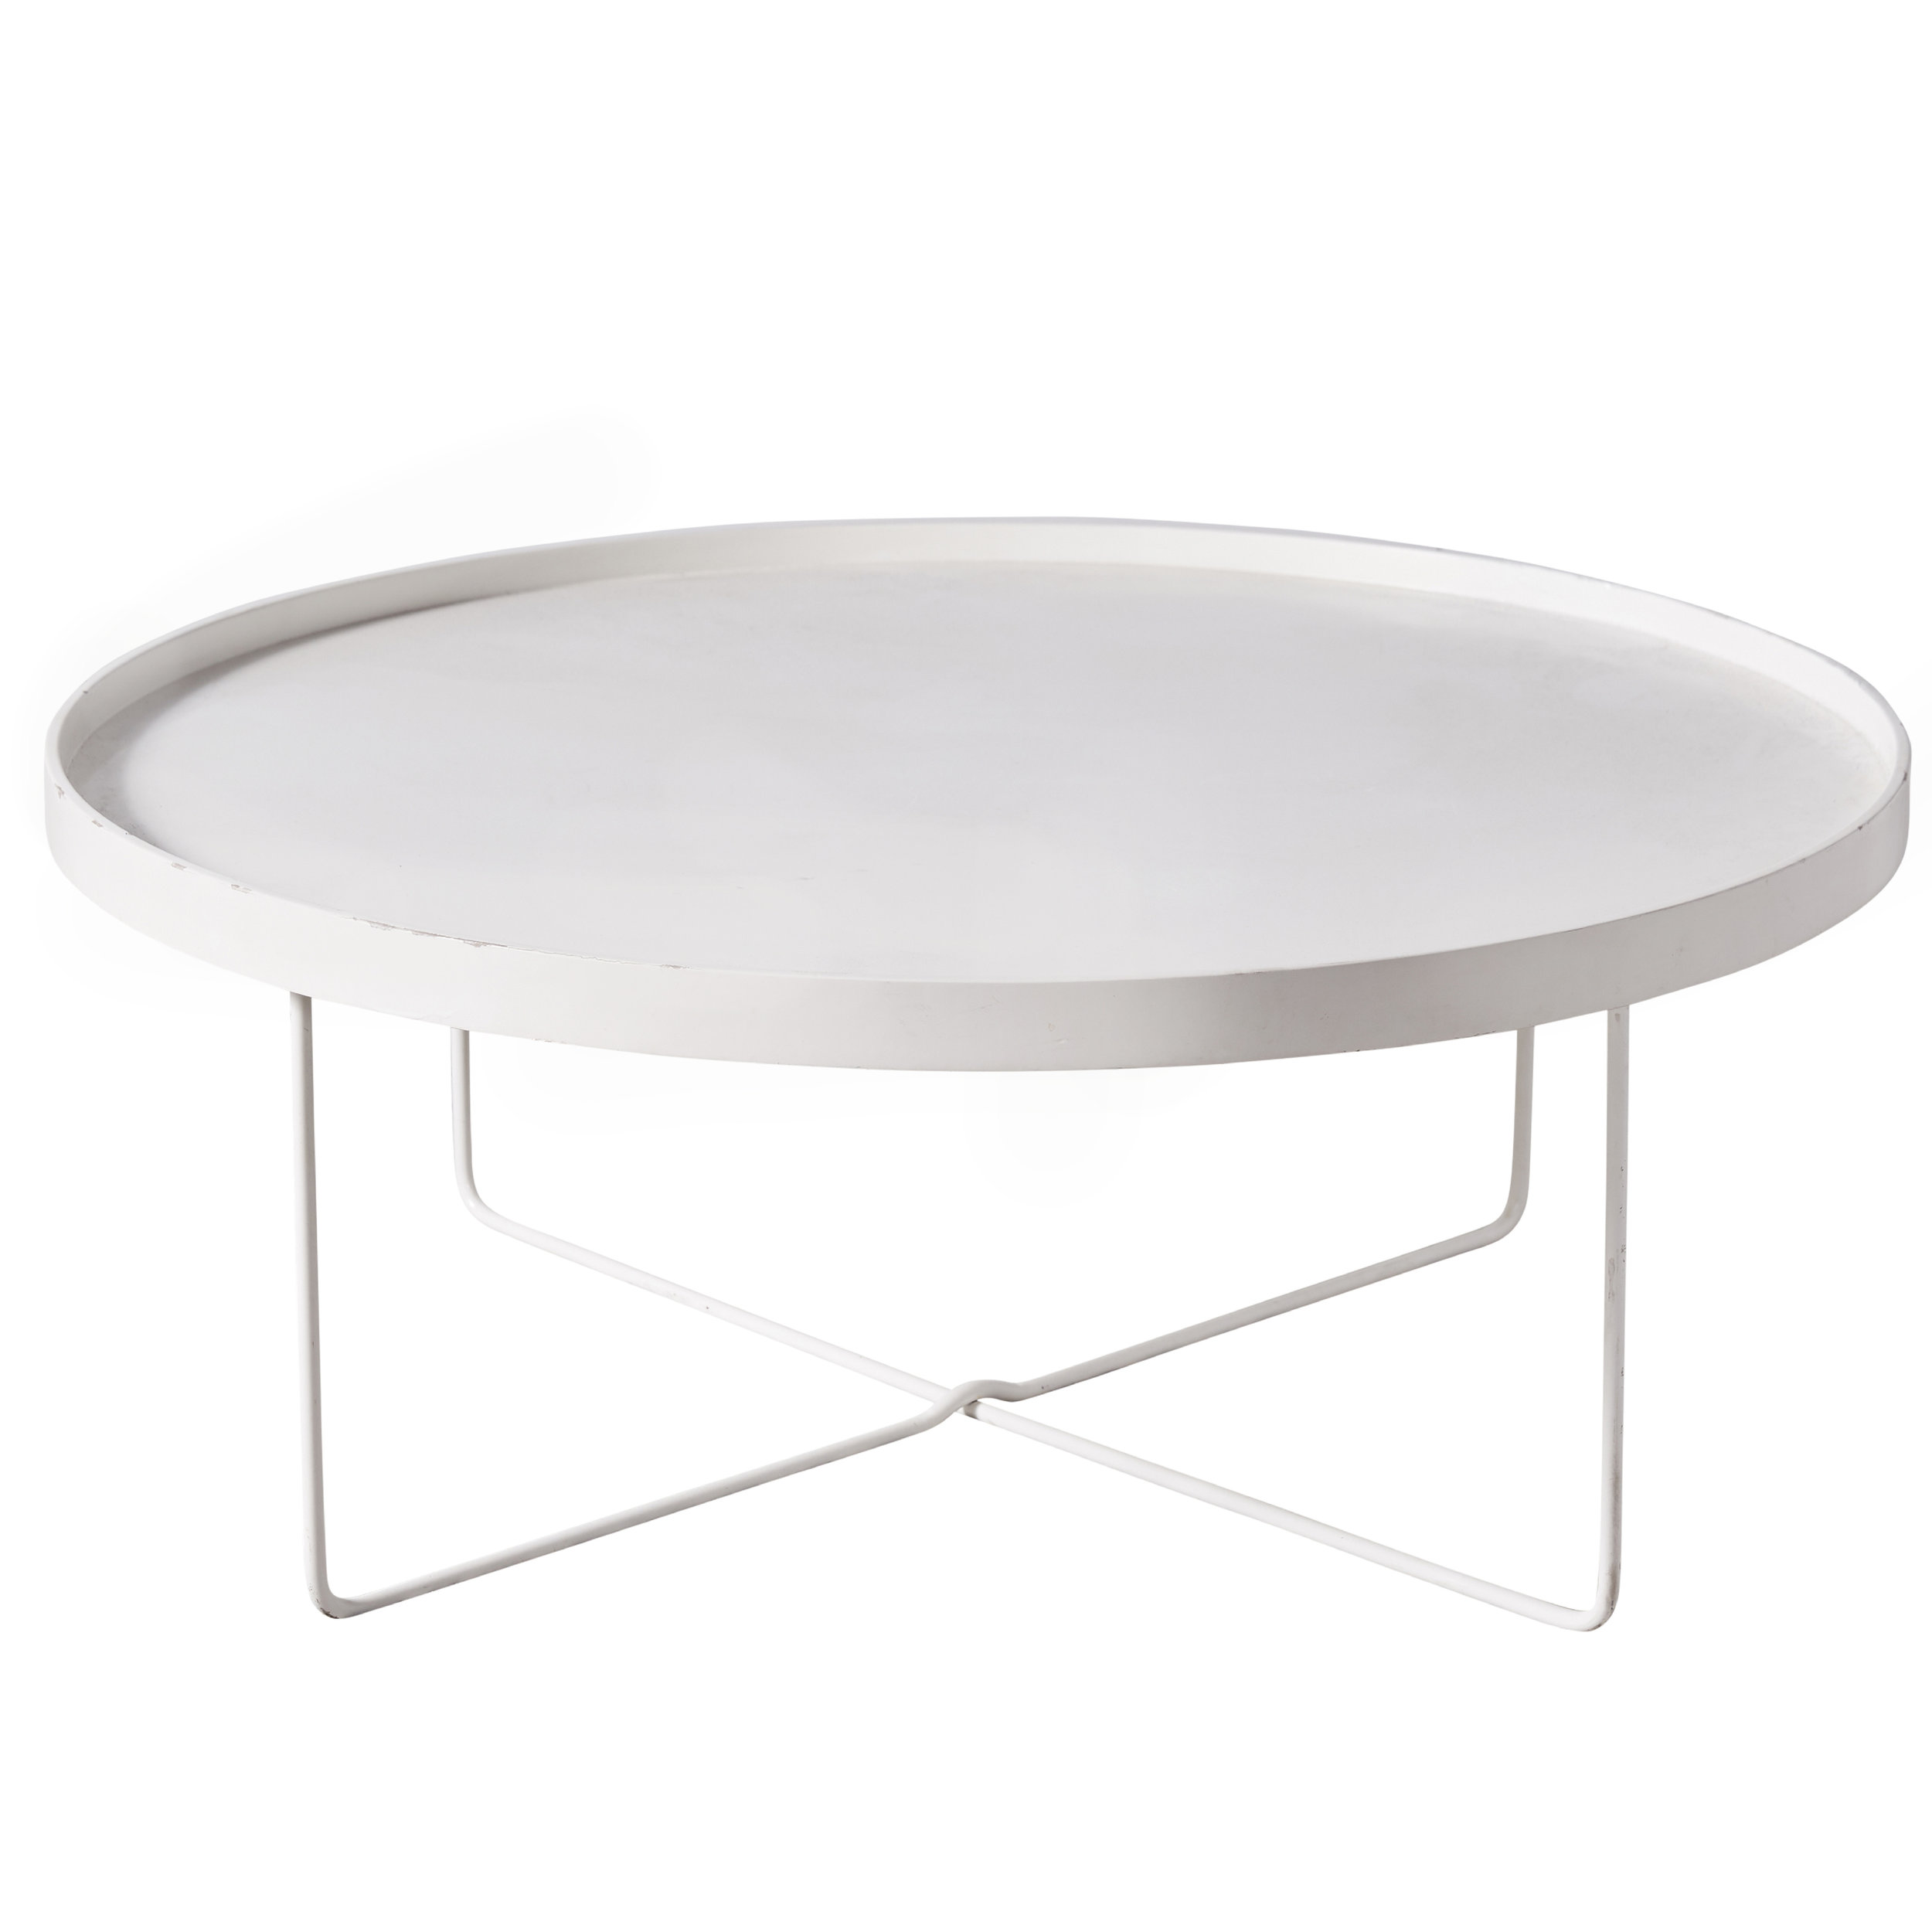 white tray coffee table simply seated sydney event hire